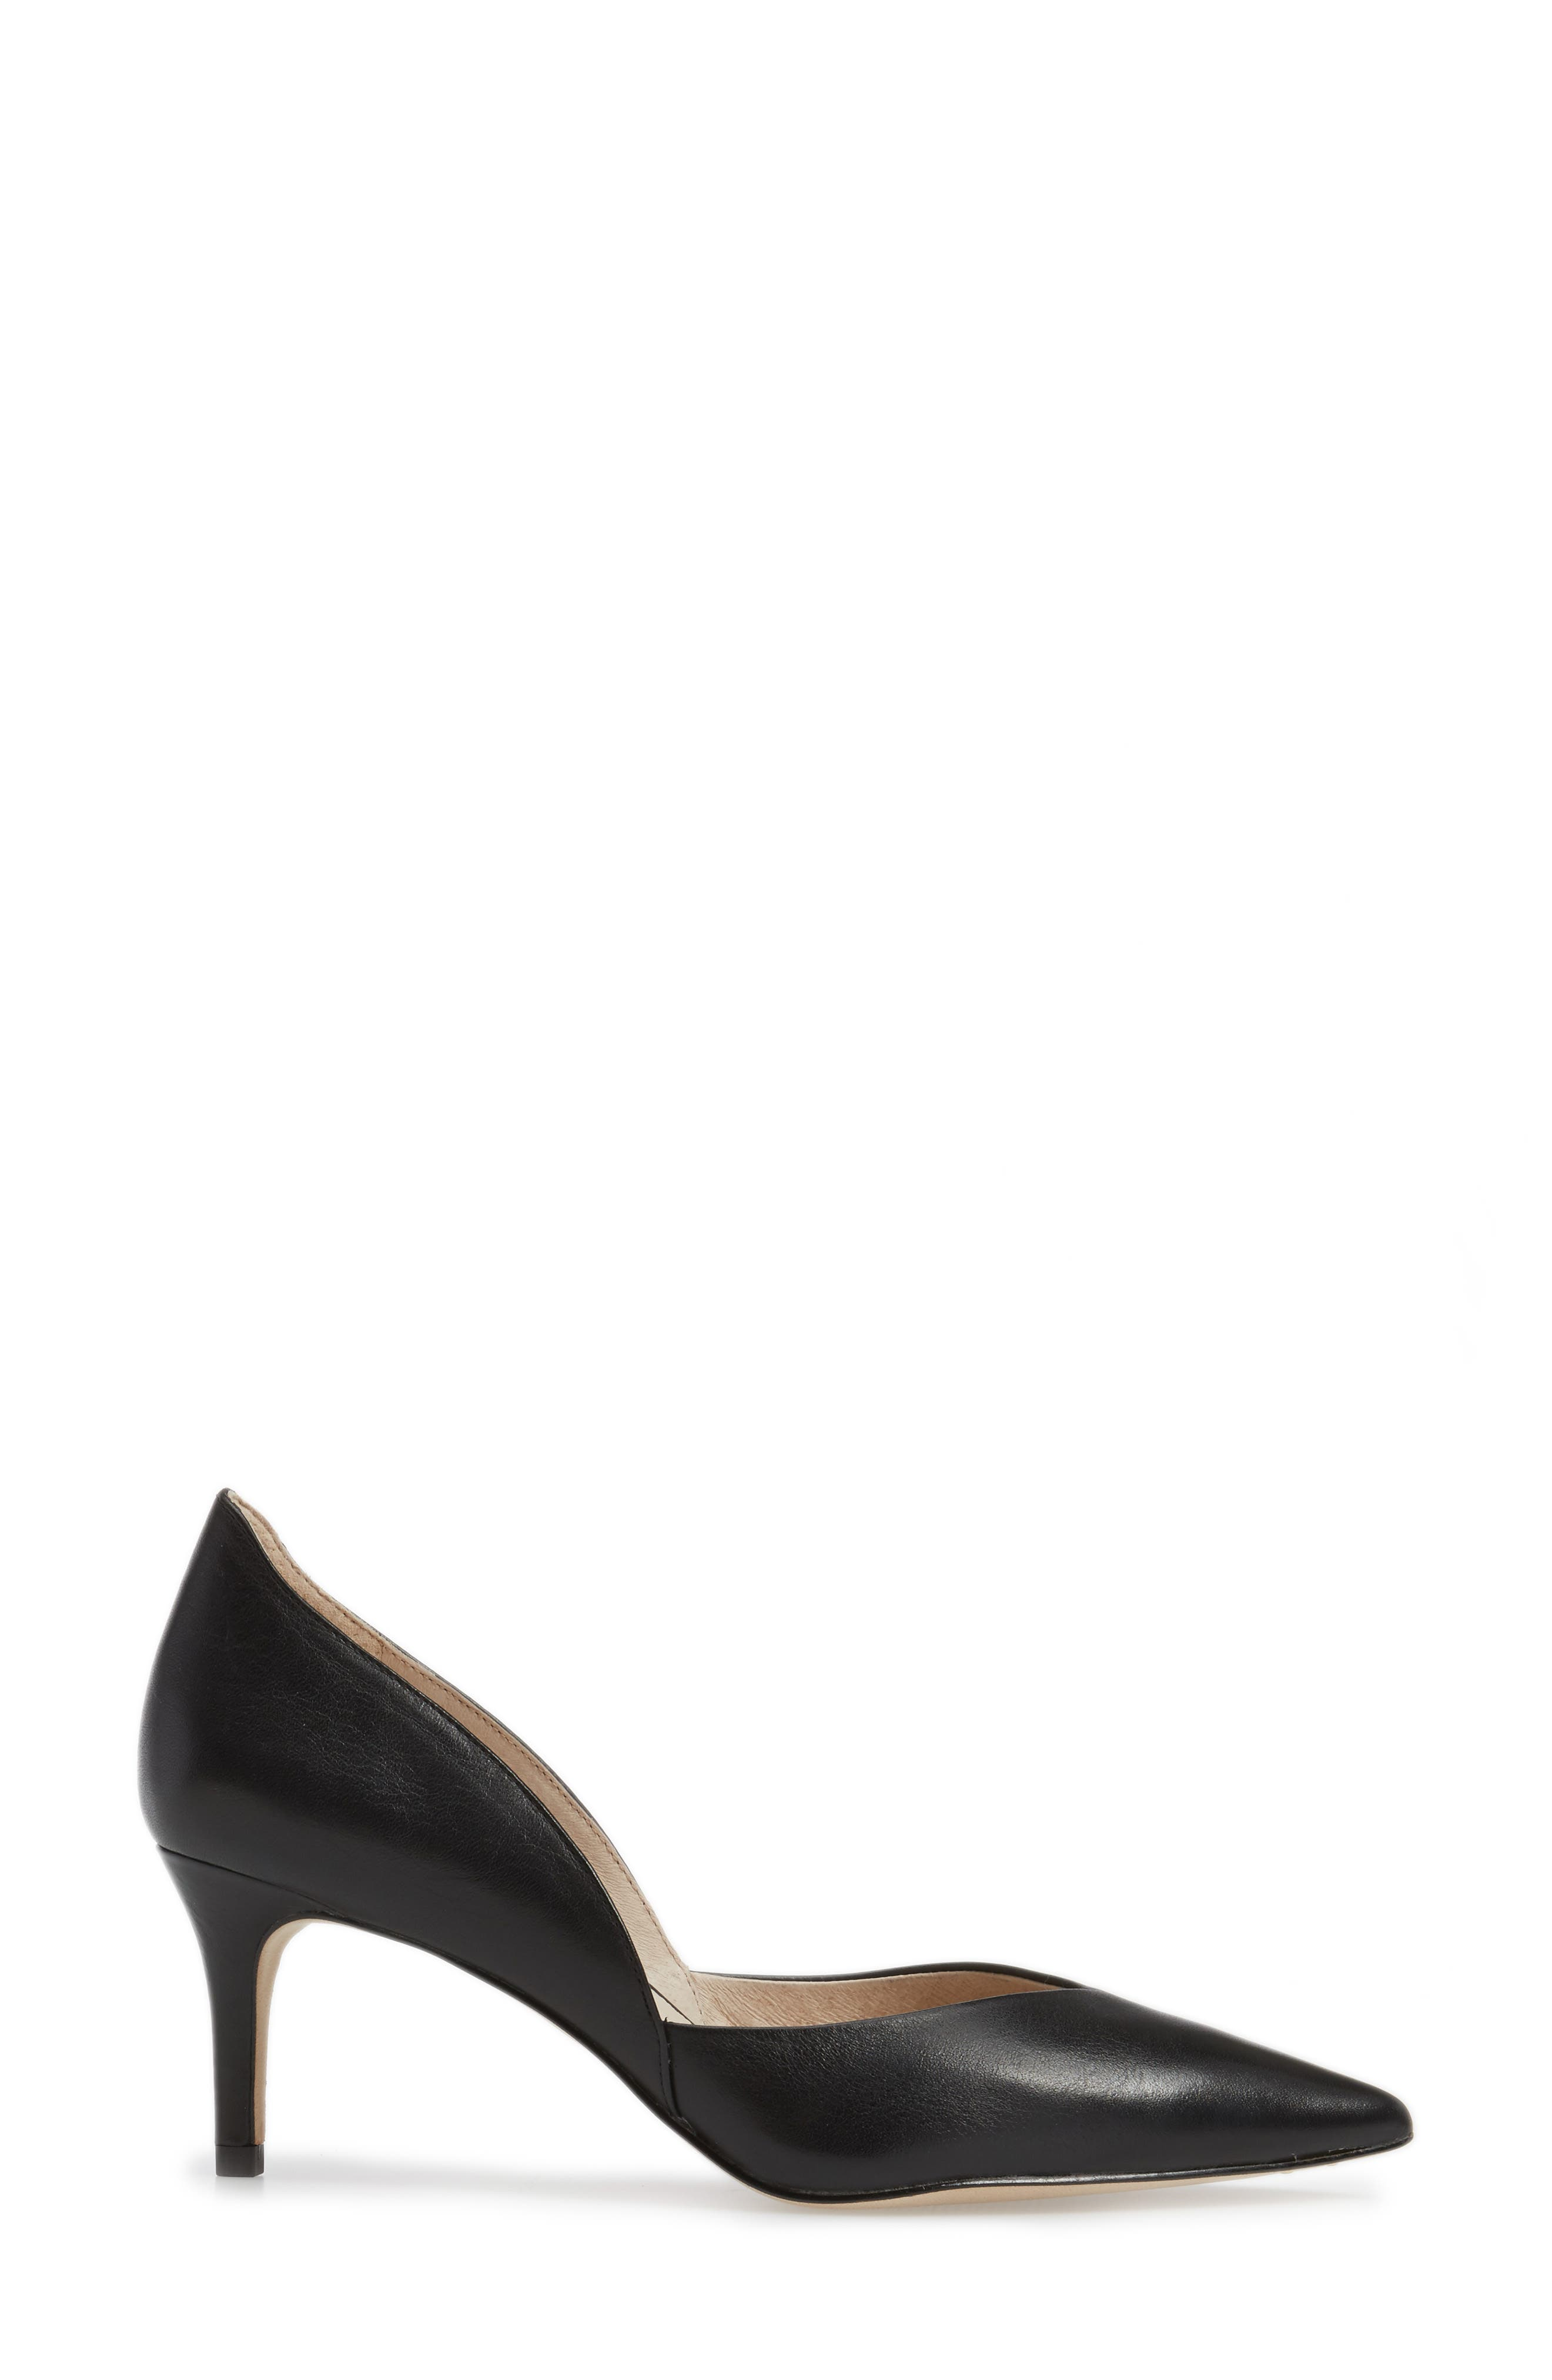 Jacee Pointy Toe Pump,                             Alternate thumbnail 3, color,                             002